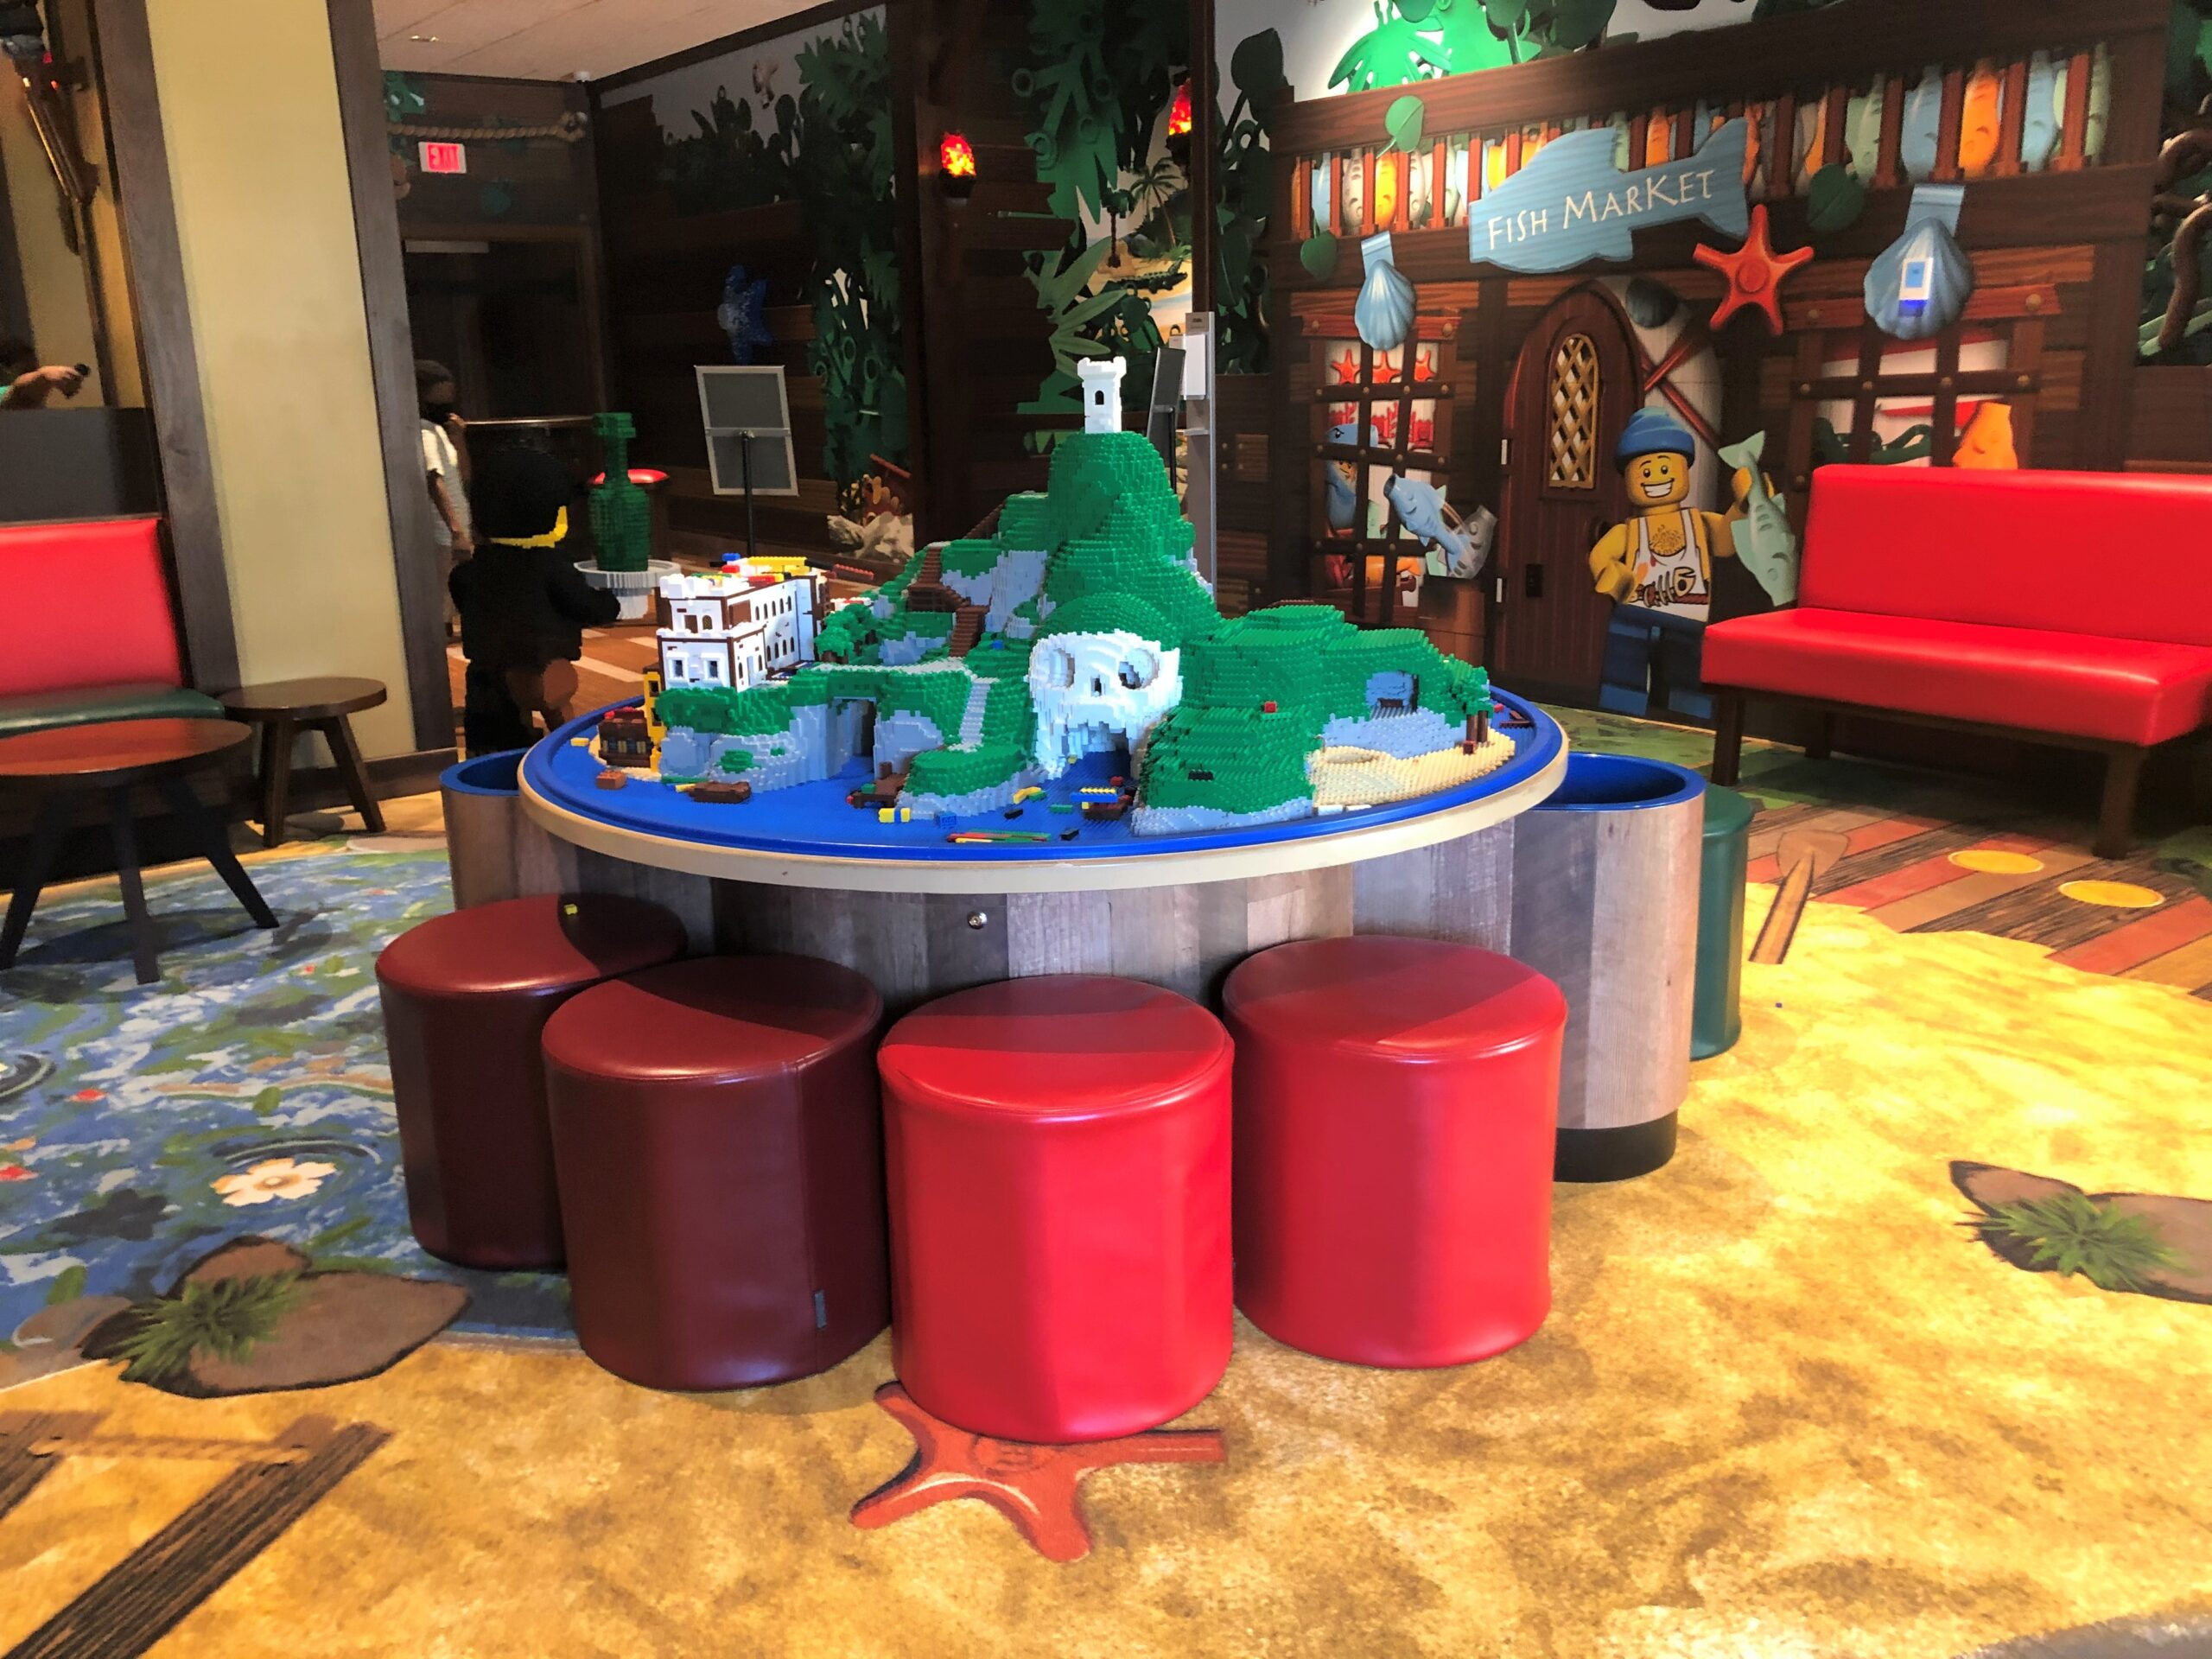 The centerpiece is a huge LEGO play table with a completed LEGO pirate scene.